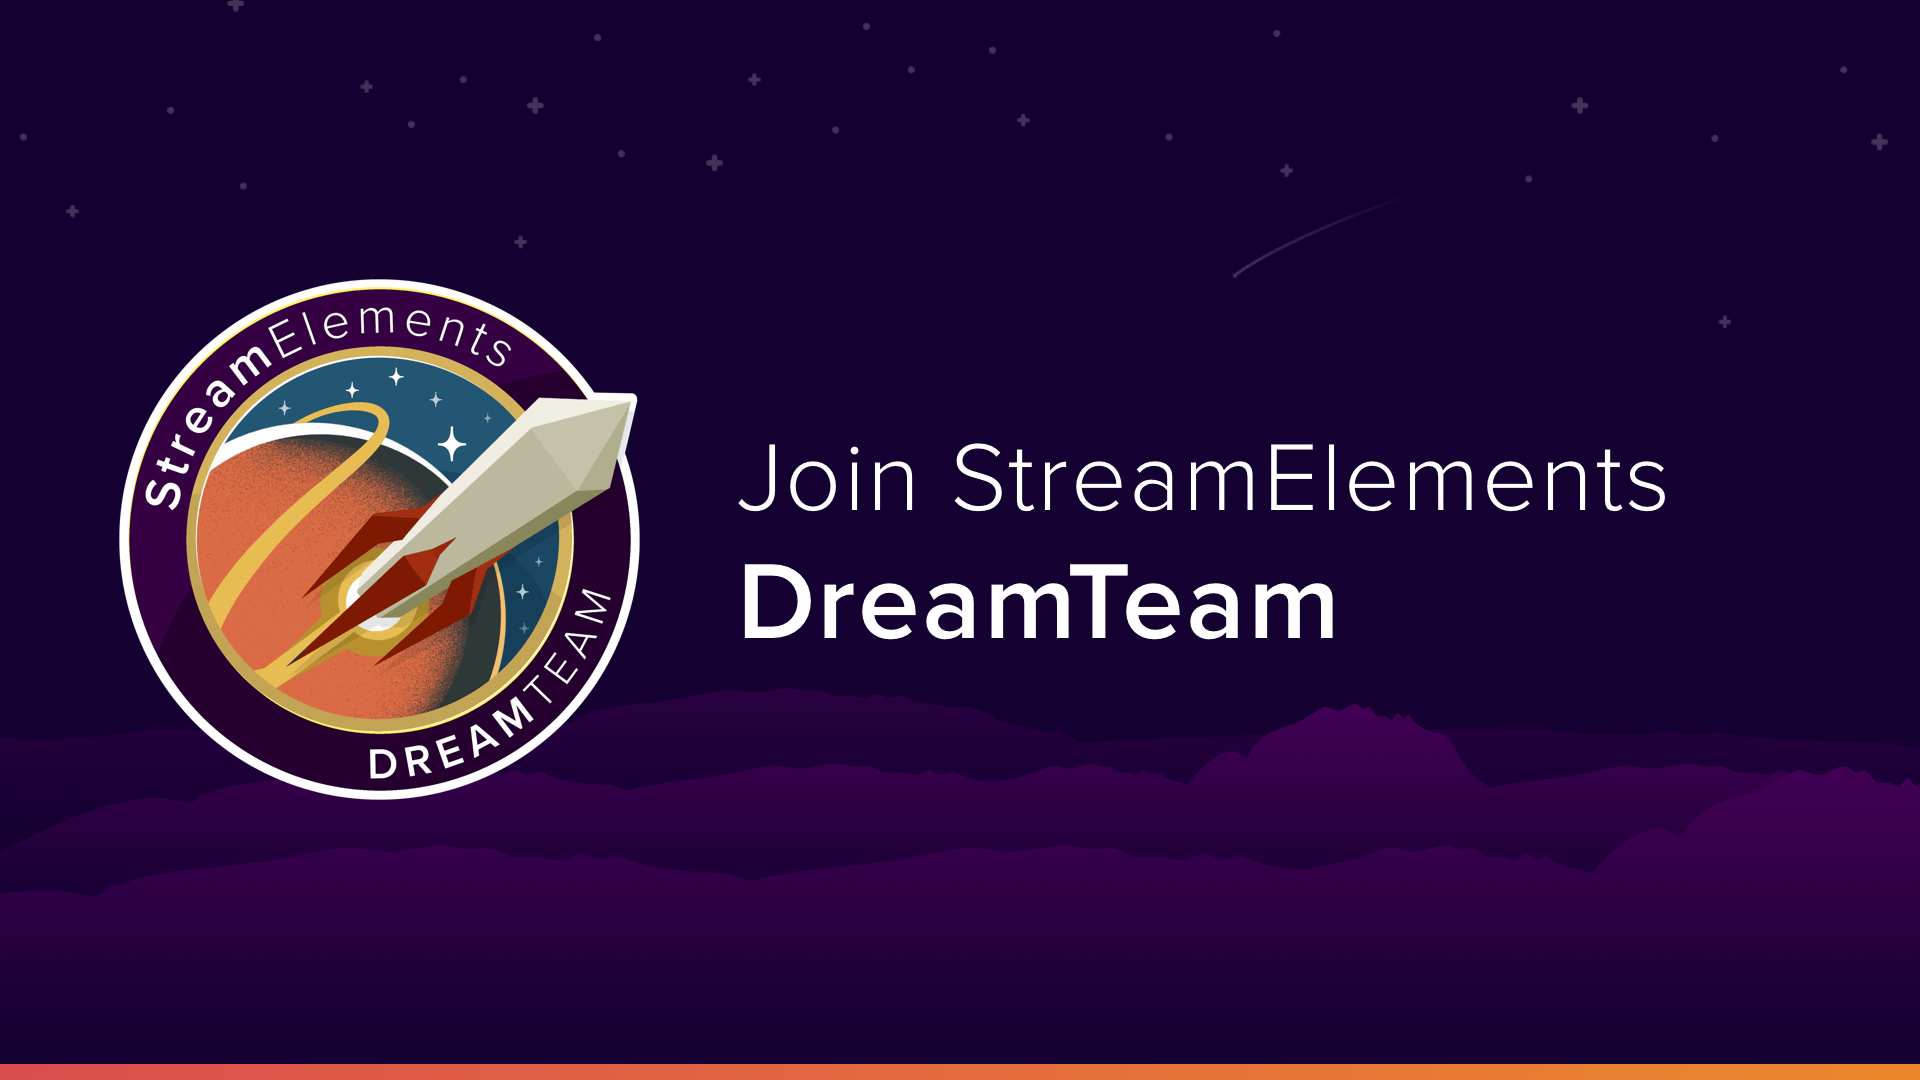 StreamElements Dream Team Apply